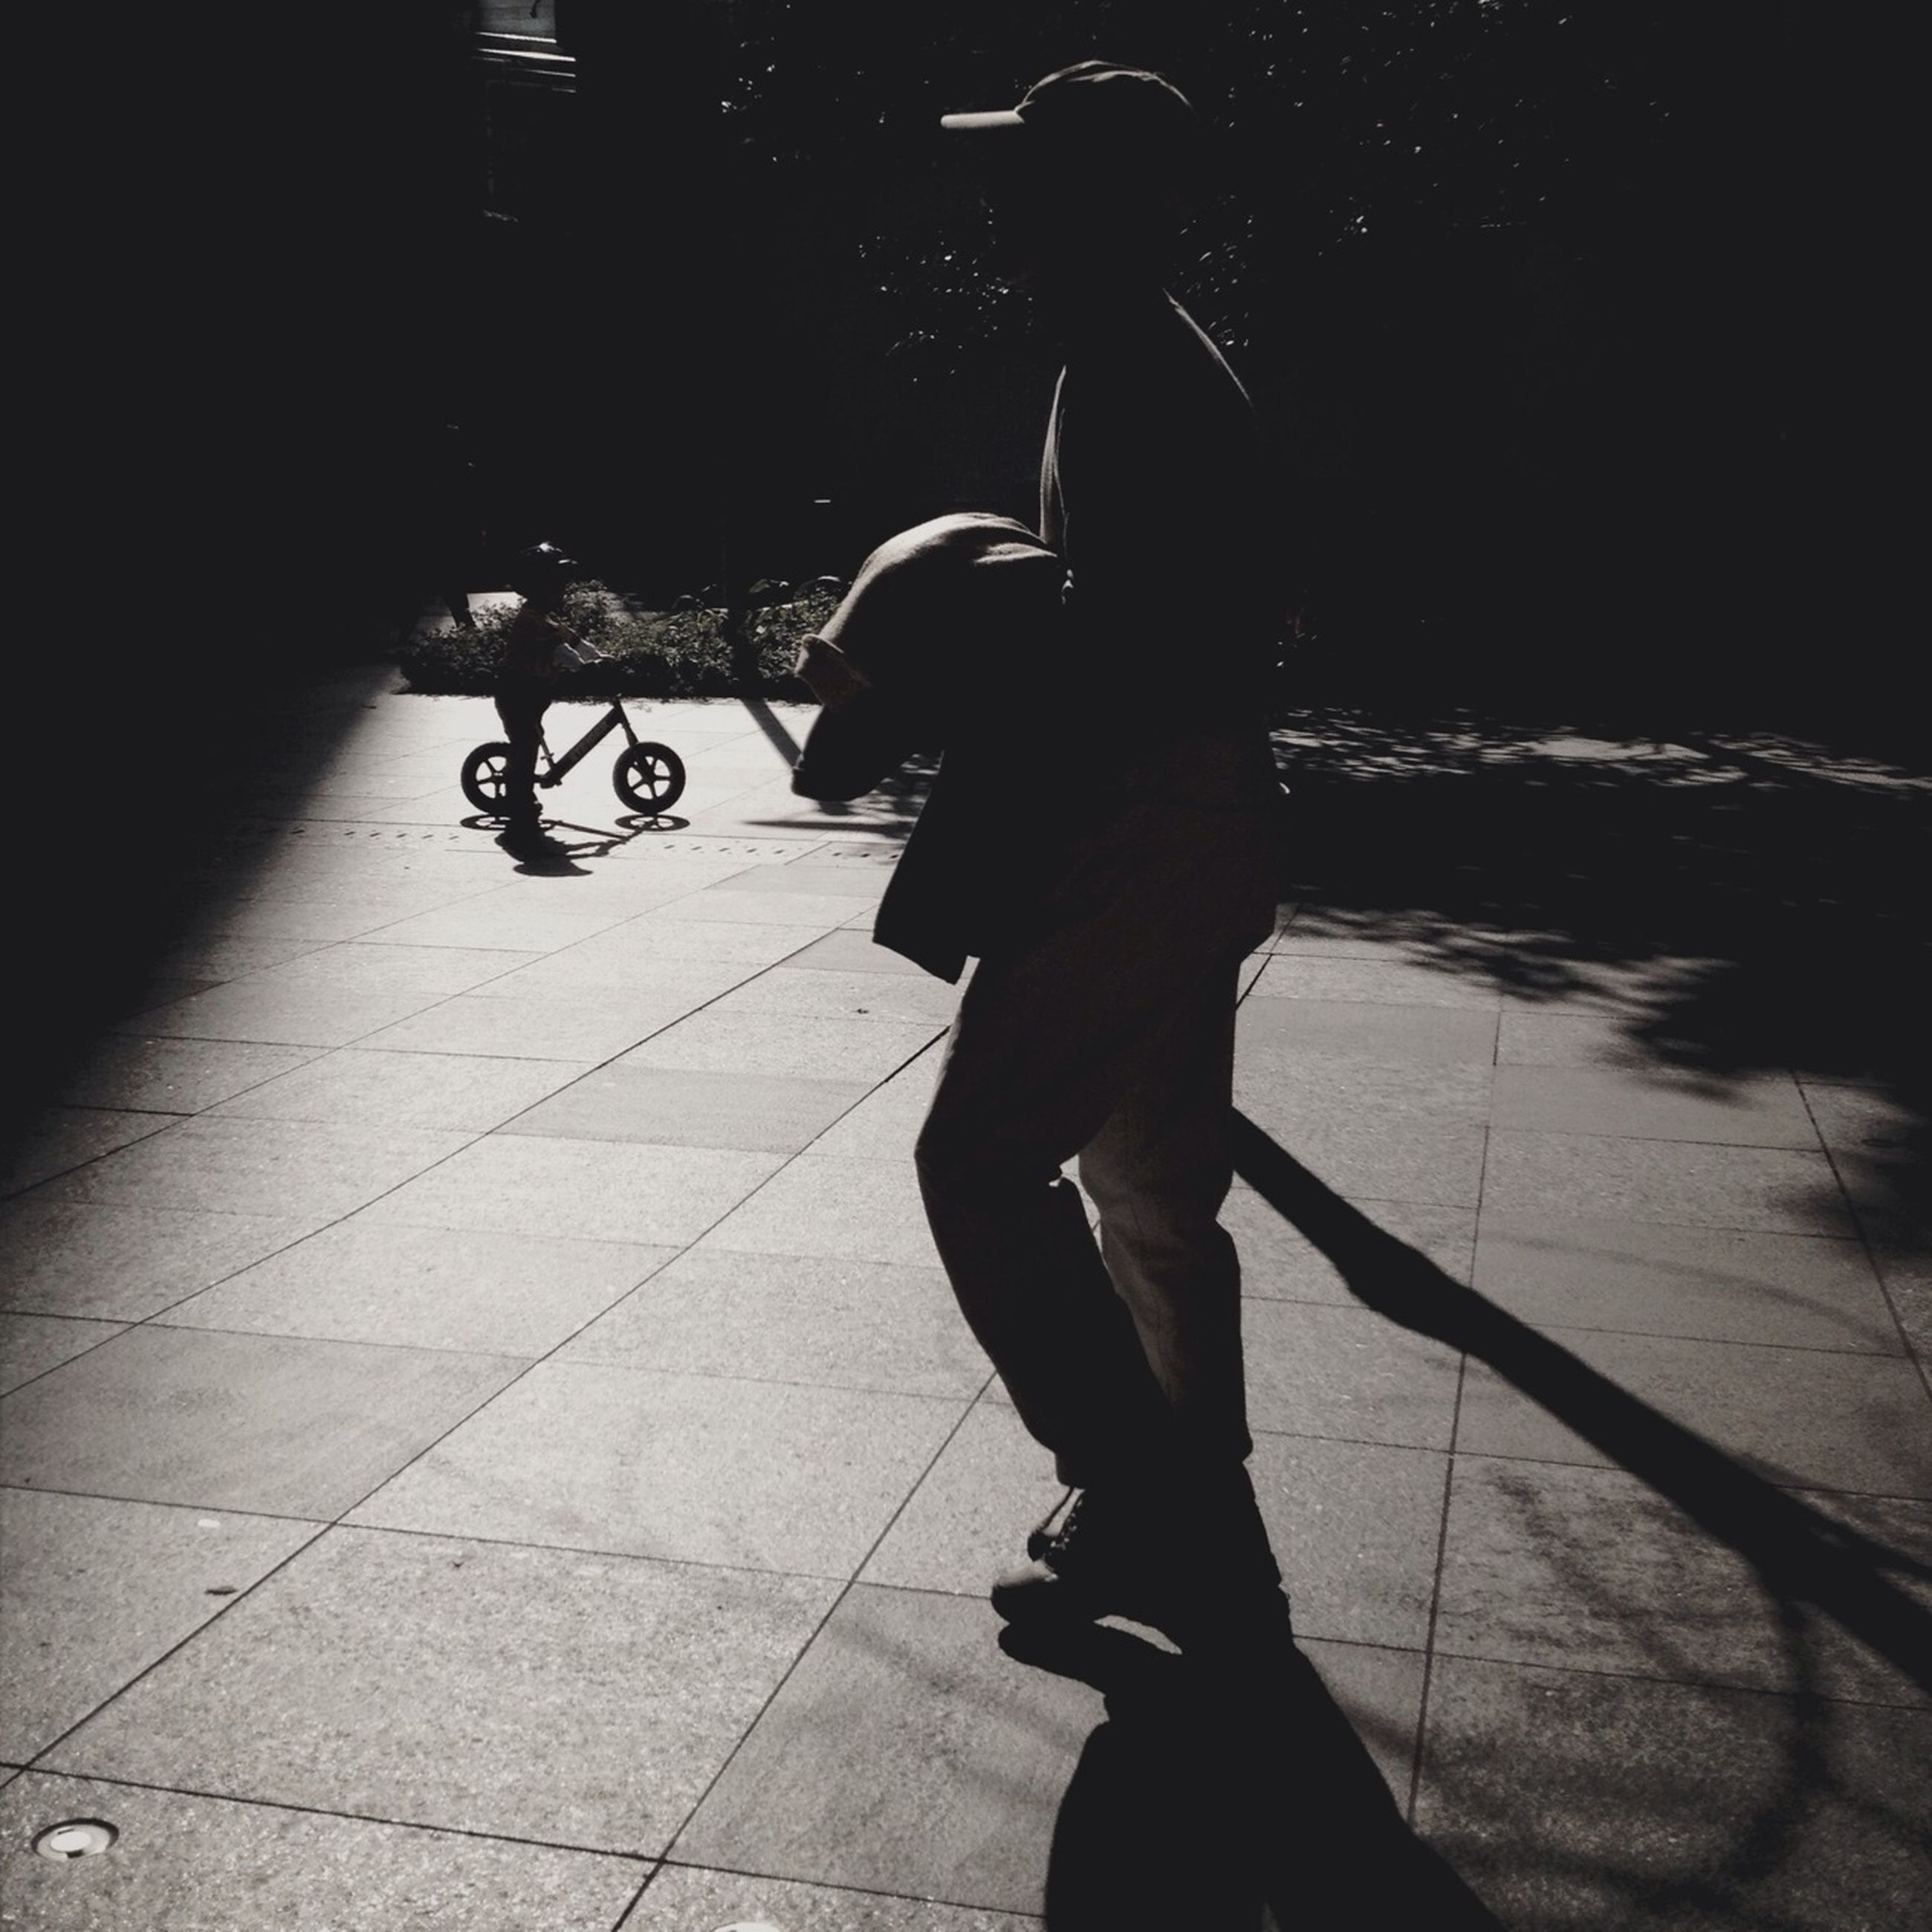 full length, lifestyles, leisure activity, shadow, street, men, walking, bicycle, rear view, transportation, sunlight, casual clothing, silhouette, boys, city life, on the move, outdoors